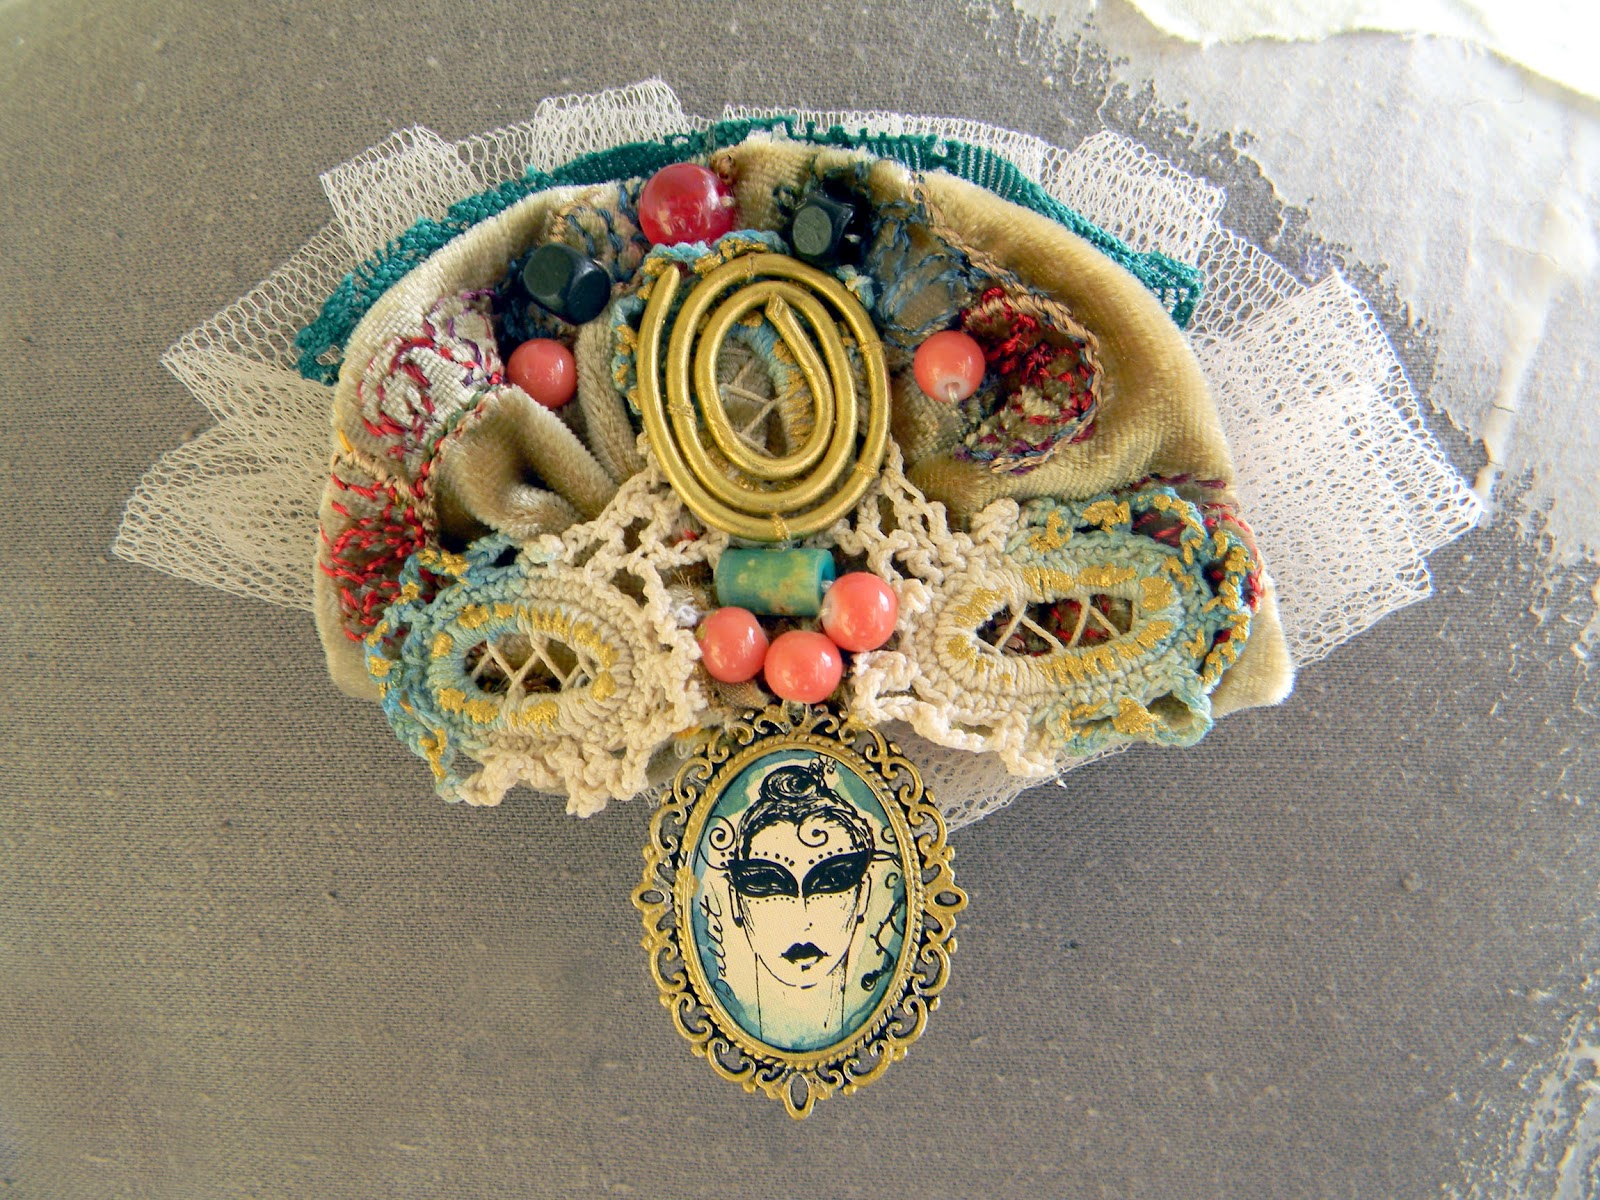 Handmade Steampunk Chic Art Brooch